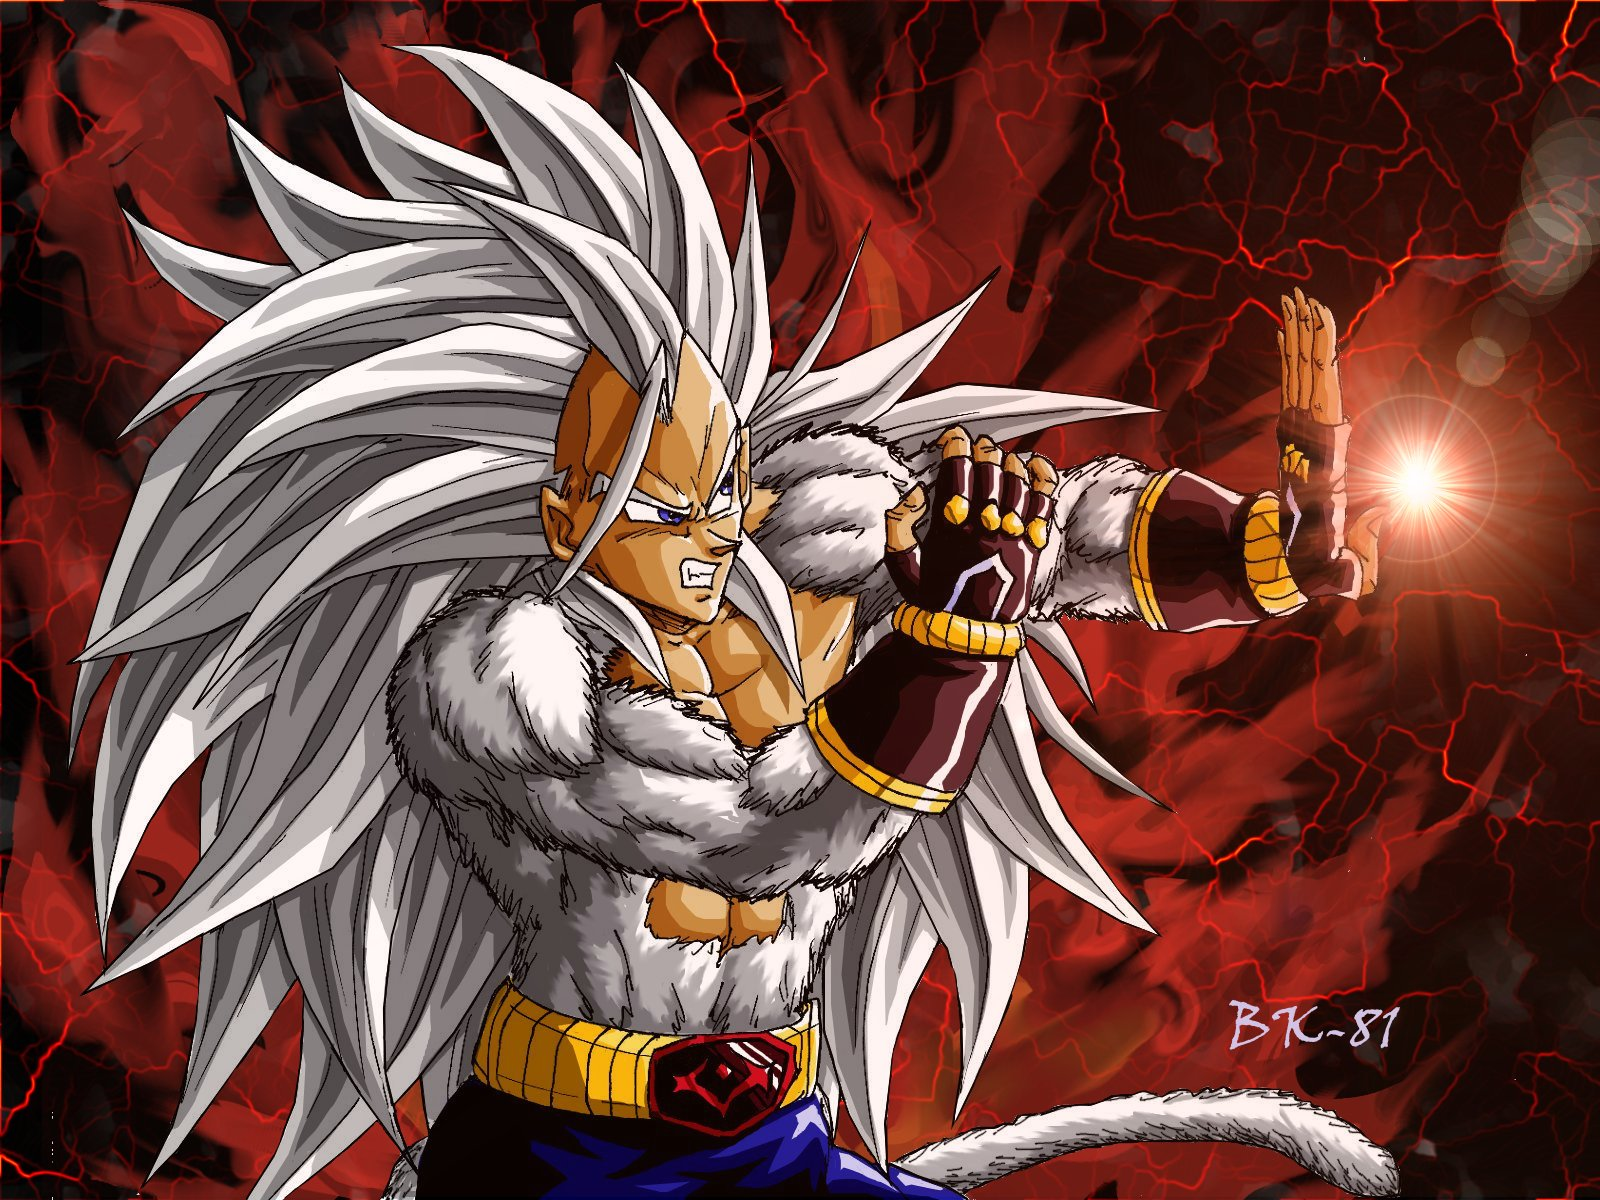 Download Goku Super Saiyan 100 Wallpapers Gallery